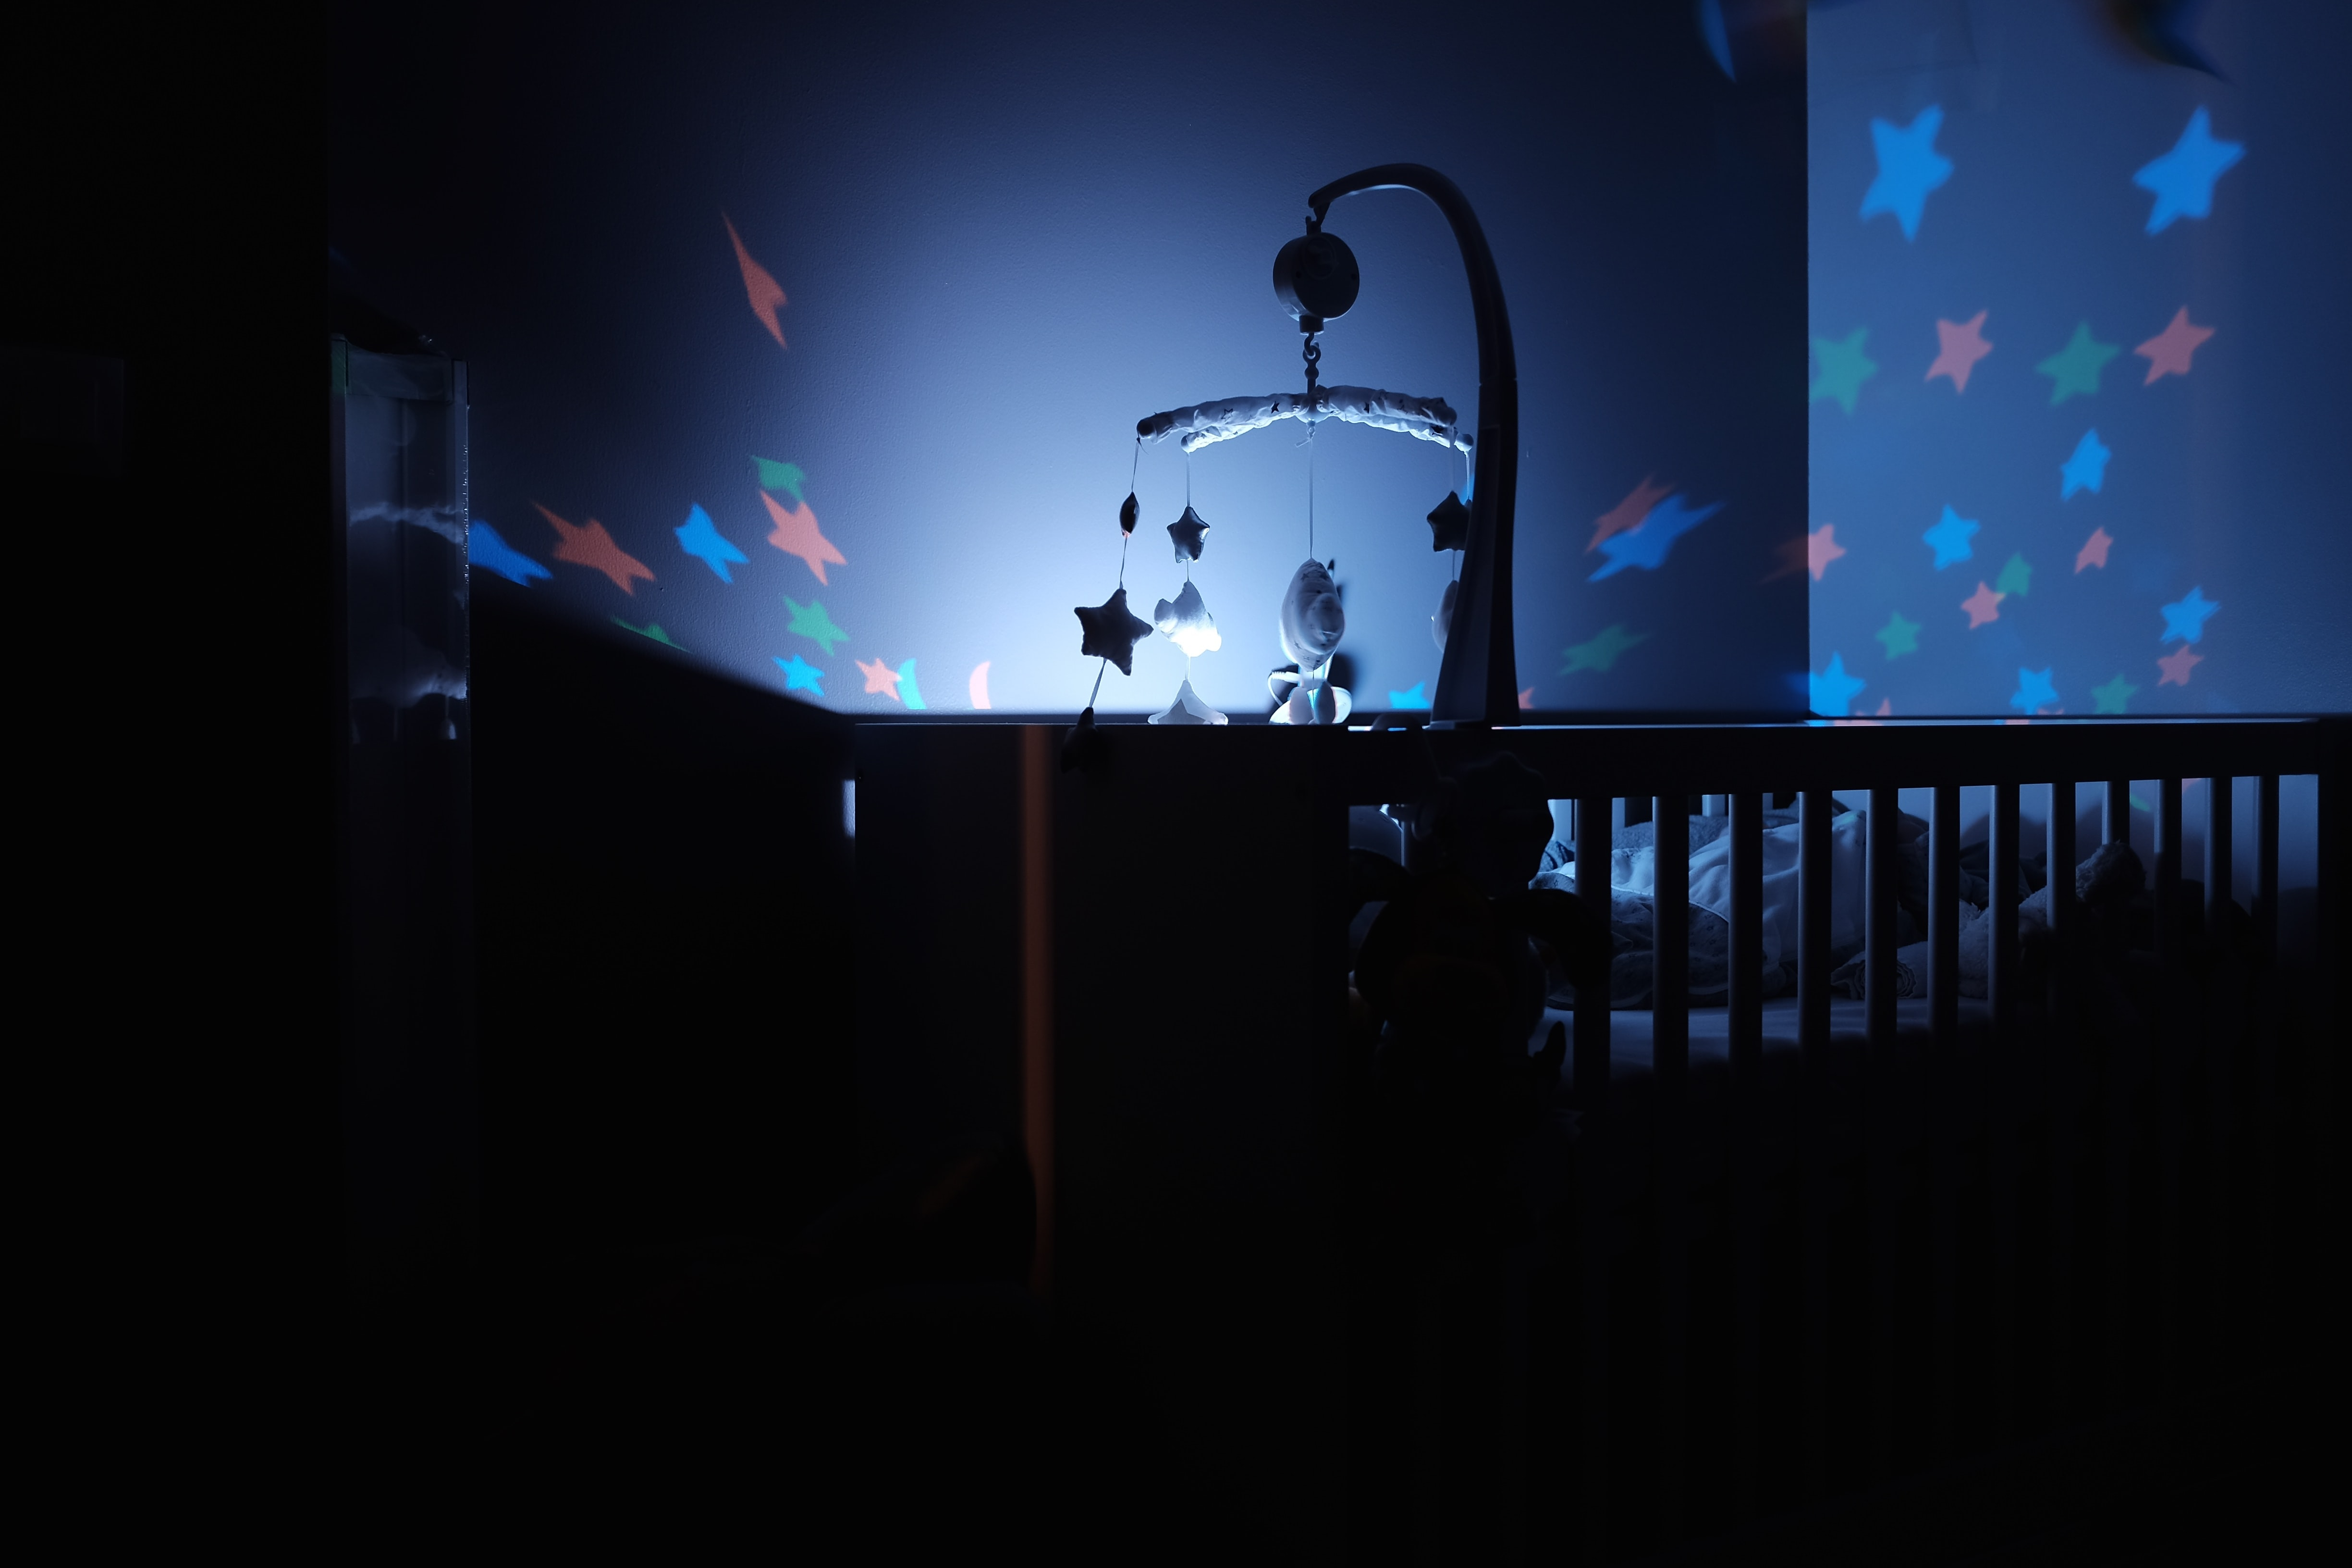 Dark room with a cradle and baby mobile with a night light and stars on the blue walls